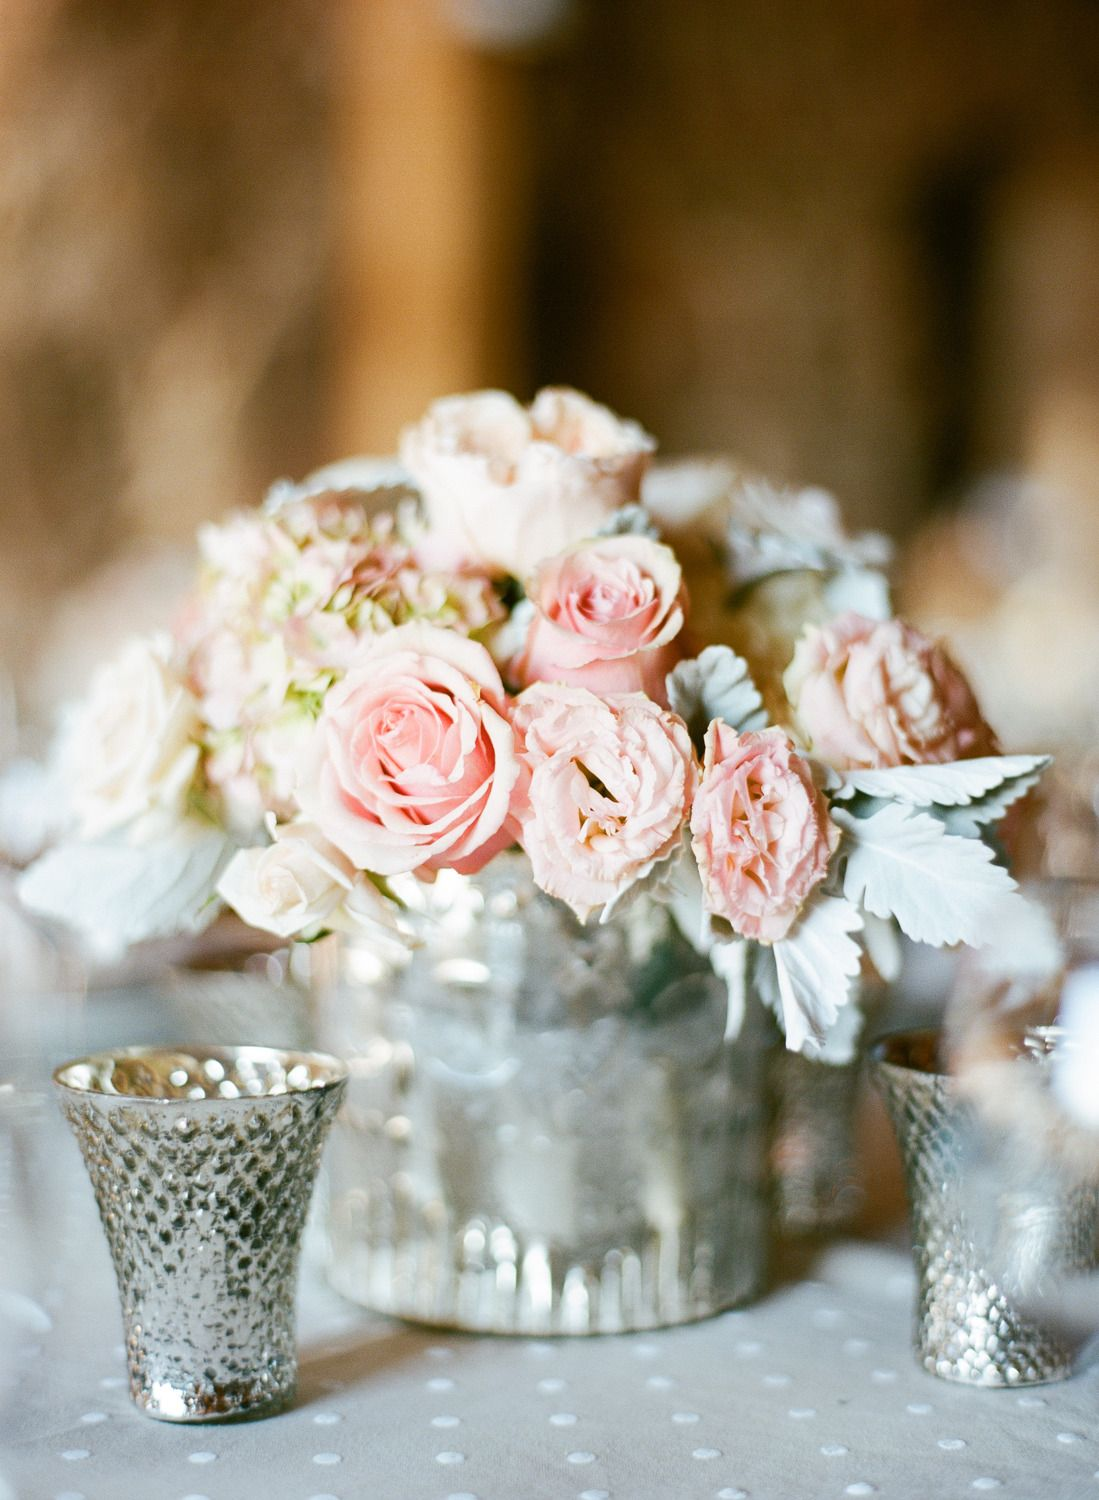 #mercury-glass, #centerpiece  Photography: Sylvie Gil Photography - sylviegilphotography.com  Read More: http://www.stylemepretty.com/2013/10/31/santa-margarita-ranch-wedding-from-sylvie-gil-touch-of-style/